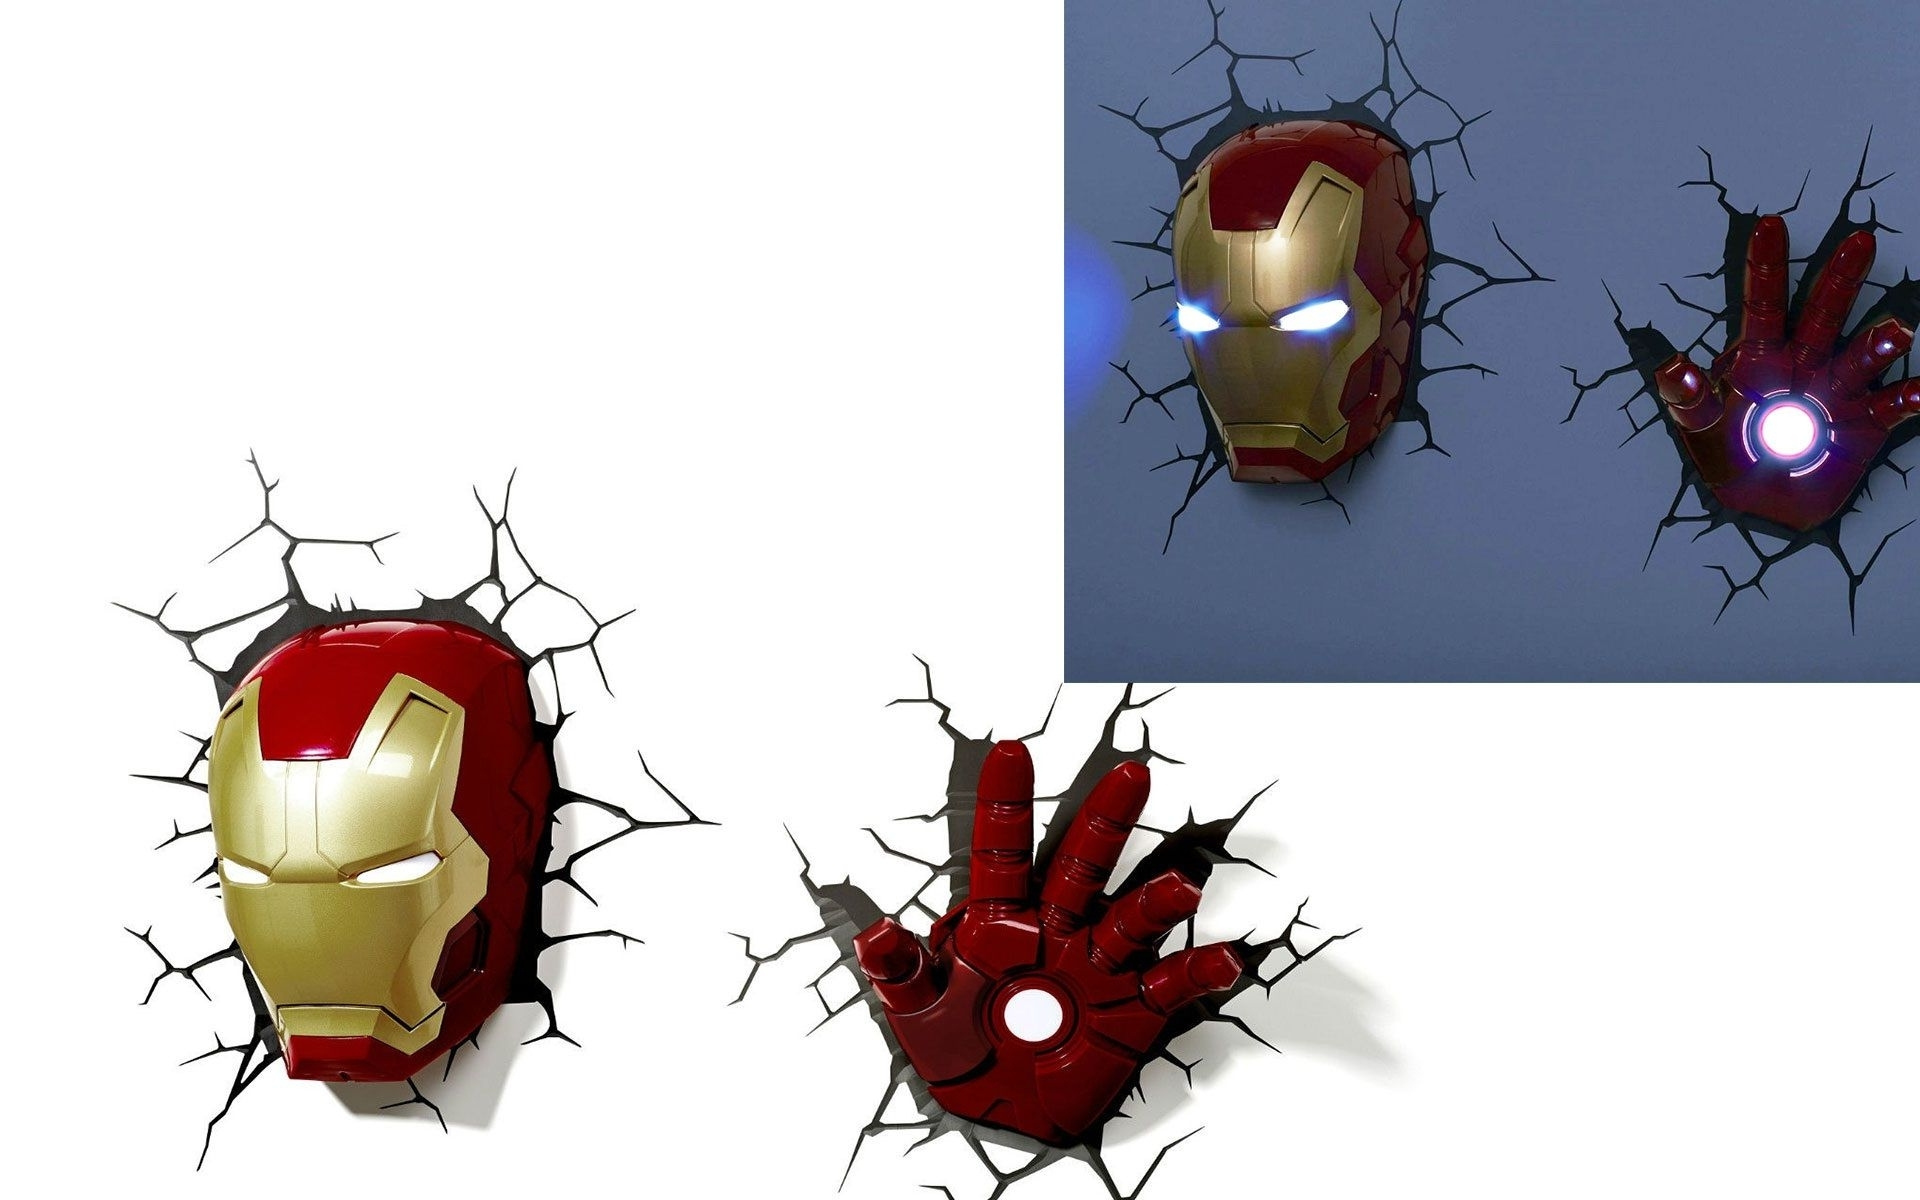 Famous 3D Deco Wall Light Nightlight Iron Man – Best Wallpaper Hd Intended For 3D Wall Art Iron Man Night Light (View 7 of 15)